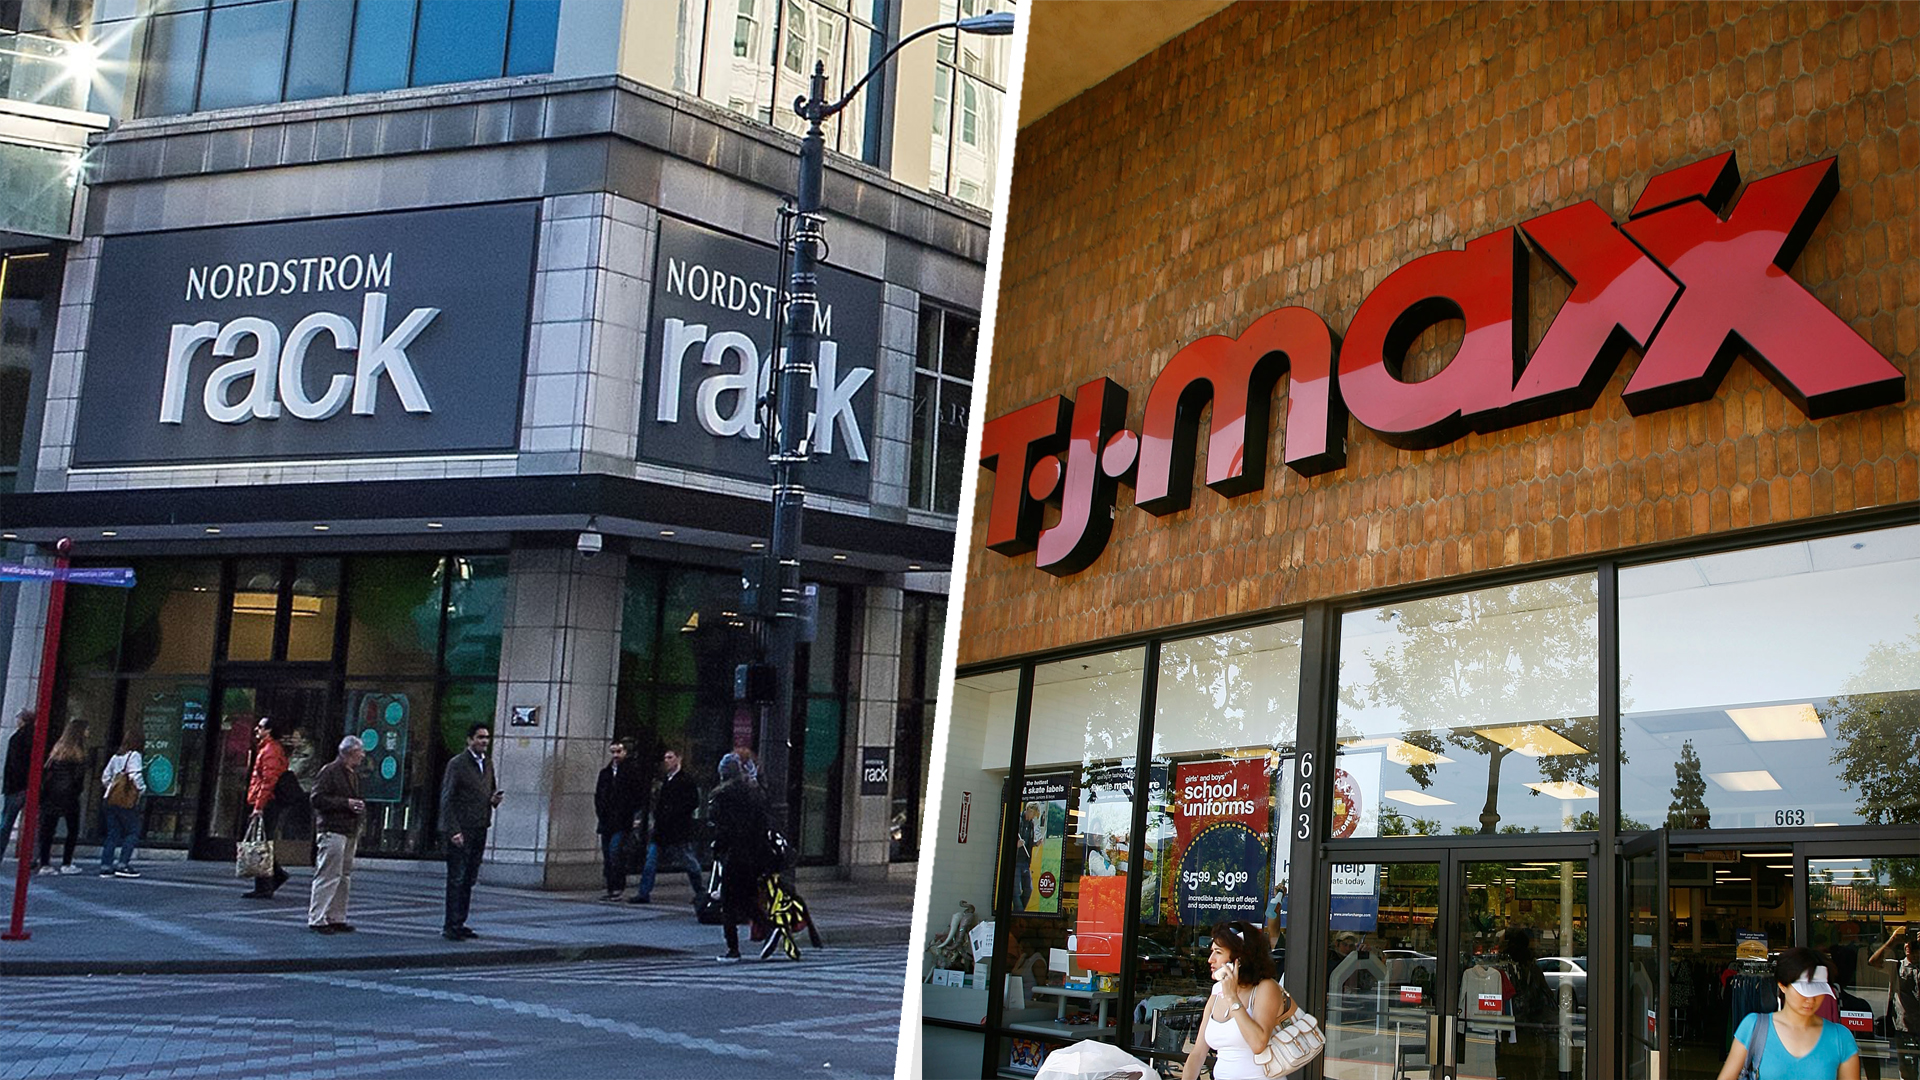 ac18b138bfd3 8 ways to shop smarter at T.J. Maxx, Nordstrom Rack, Marshalls